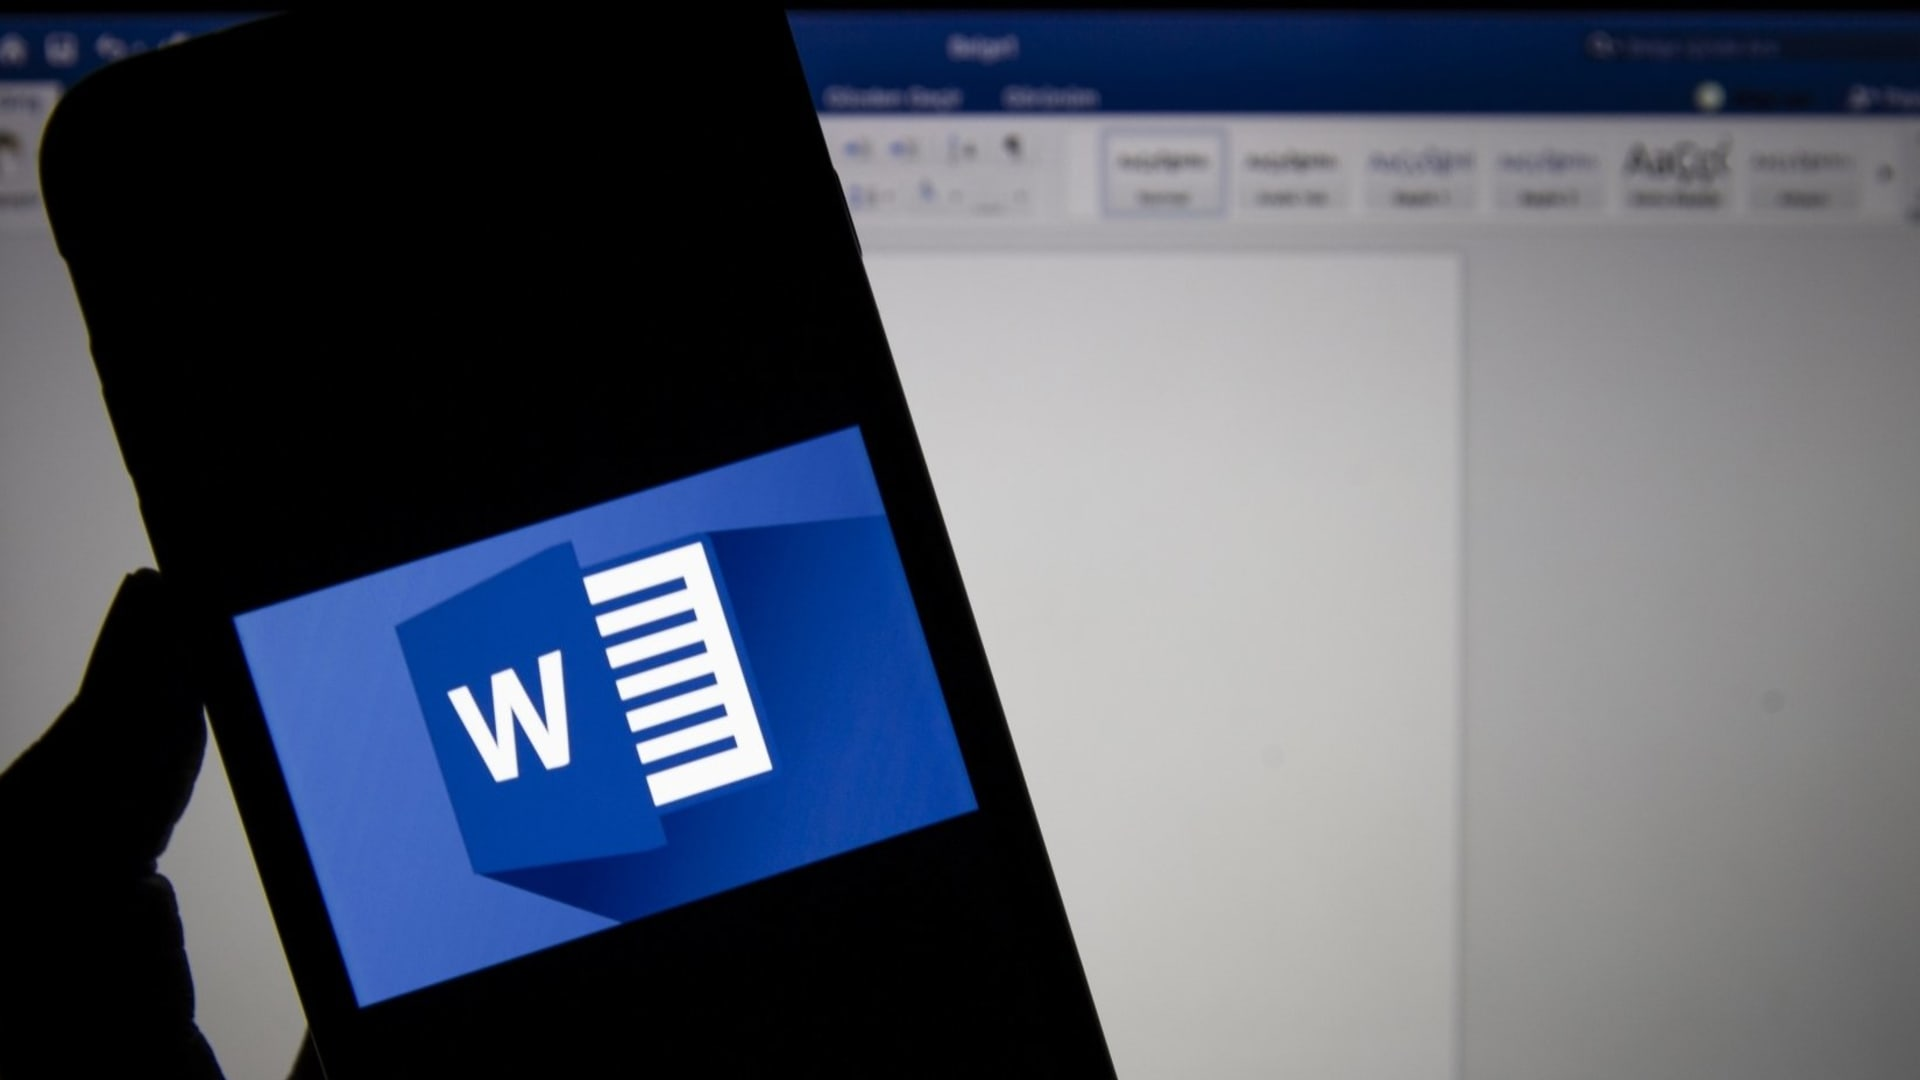 Microsoft Is Adding Transcription to Word, and It's a Killer Productivity Feature